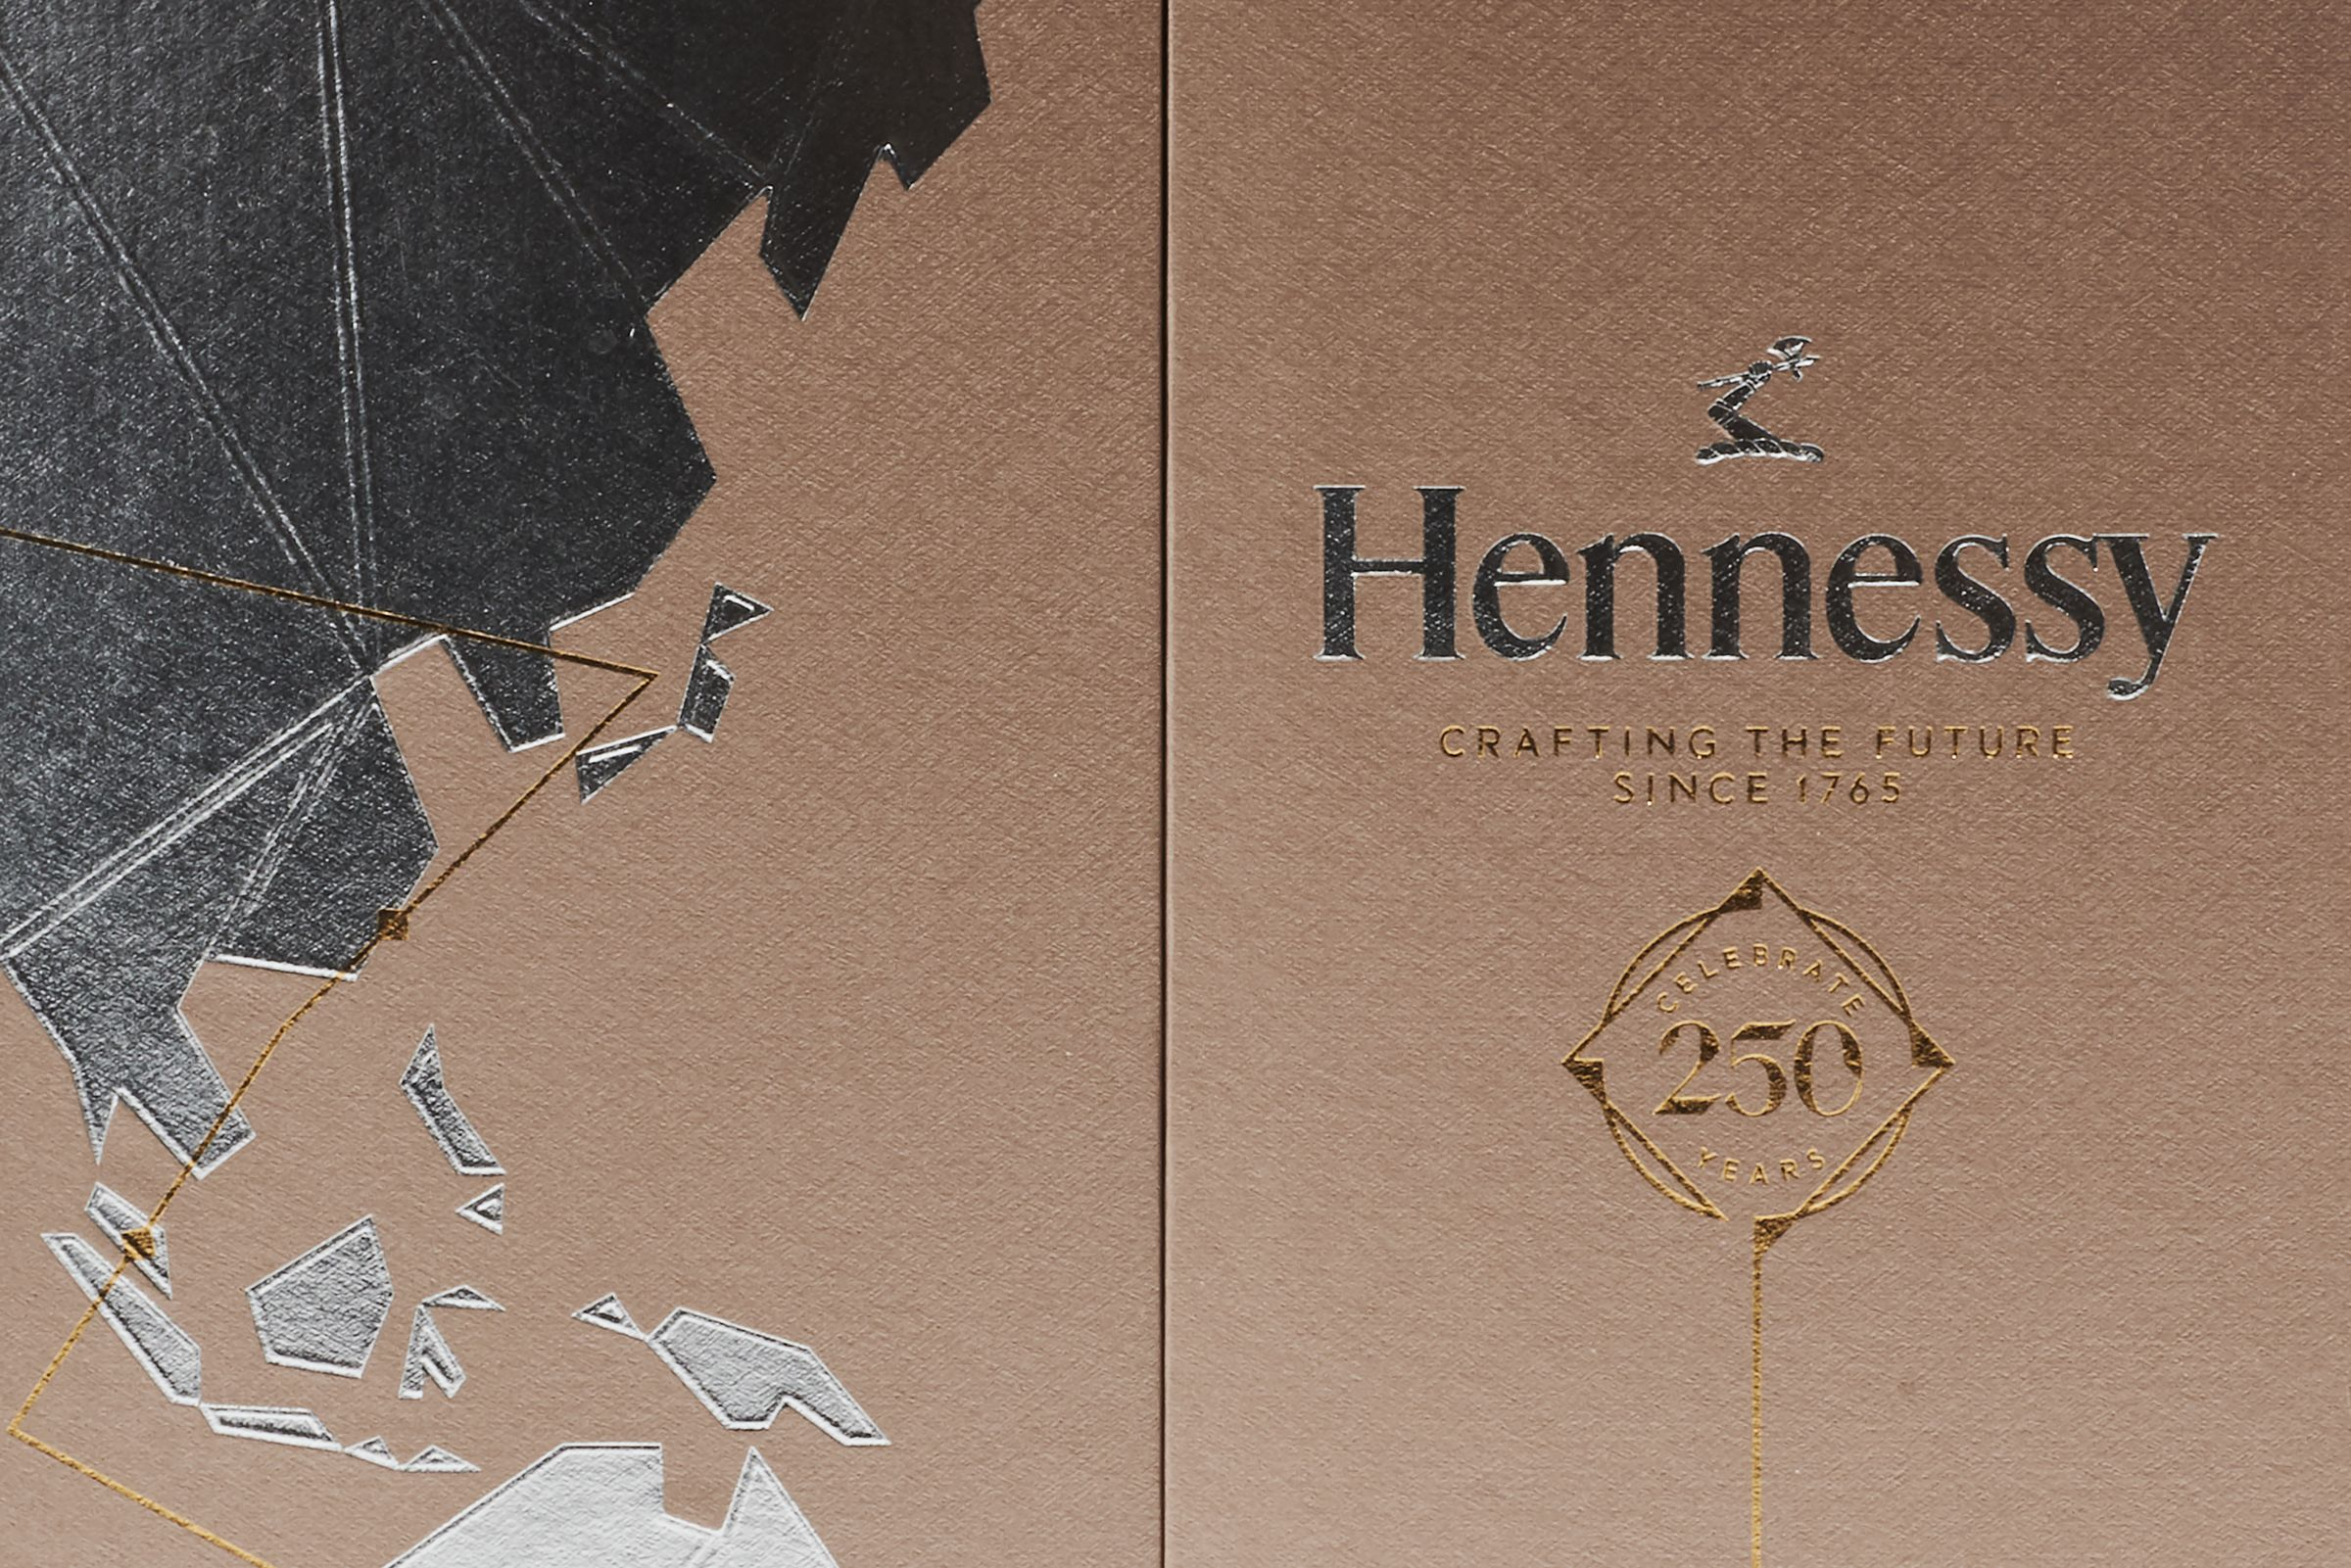 Hennessy 250 anniversary collector's blend box